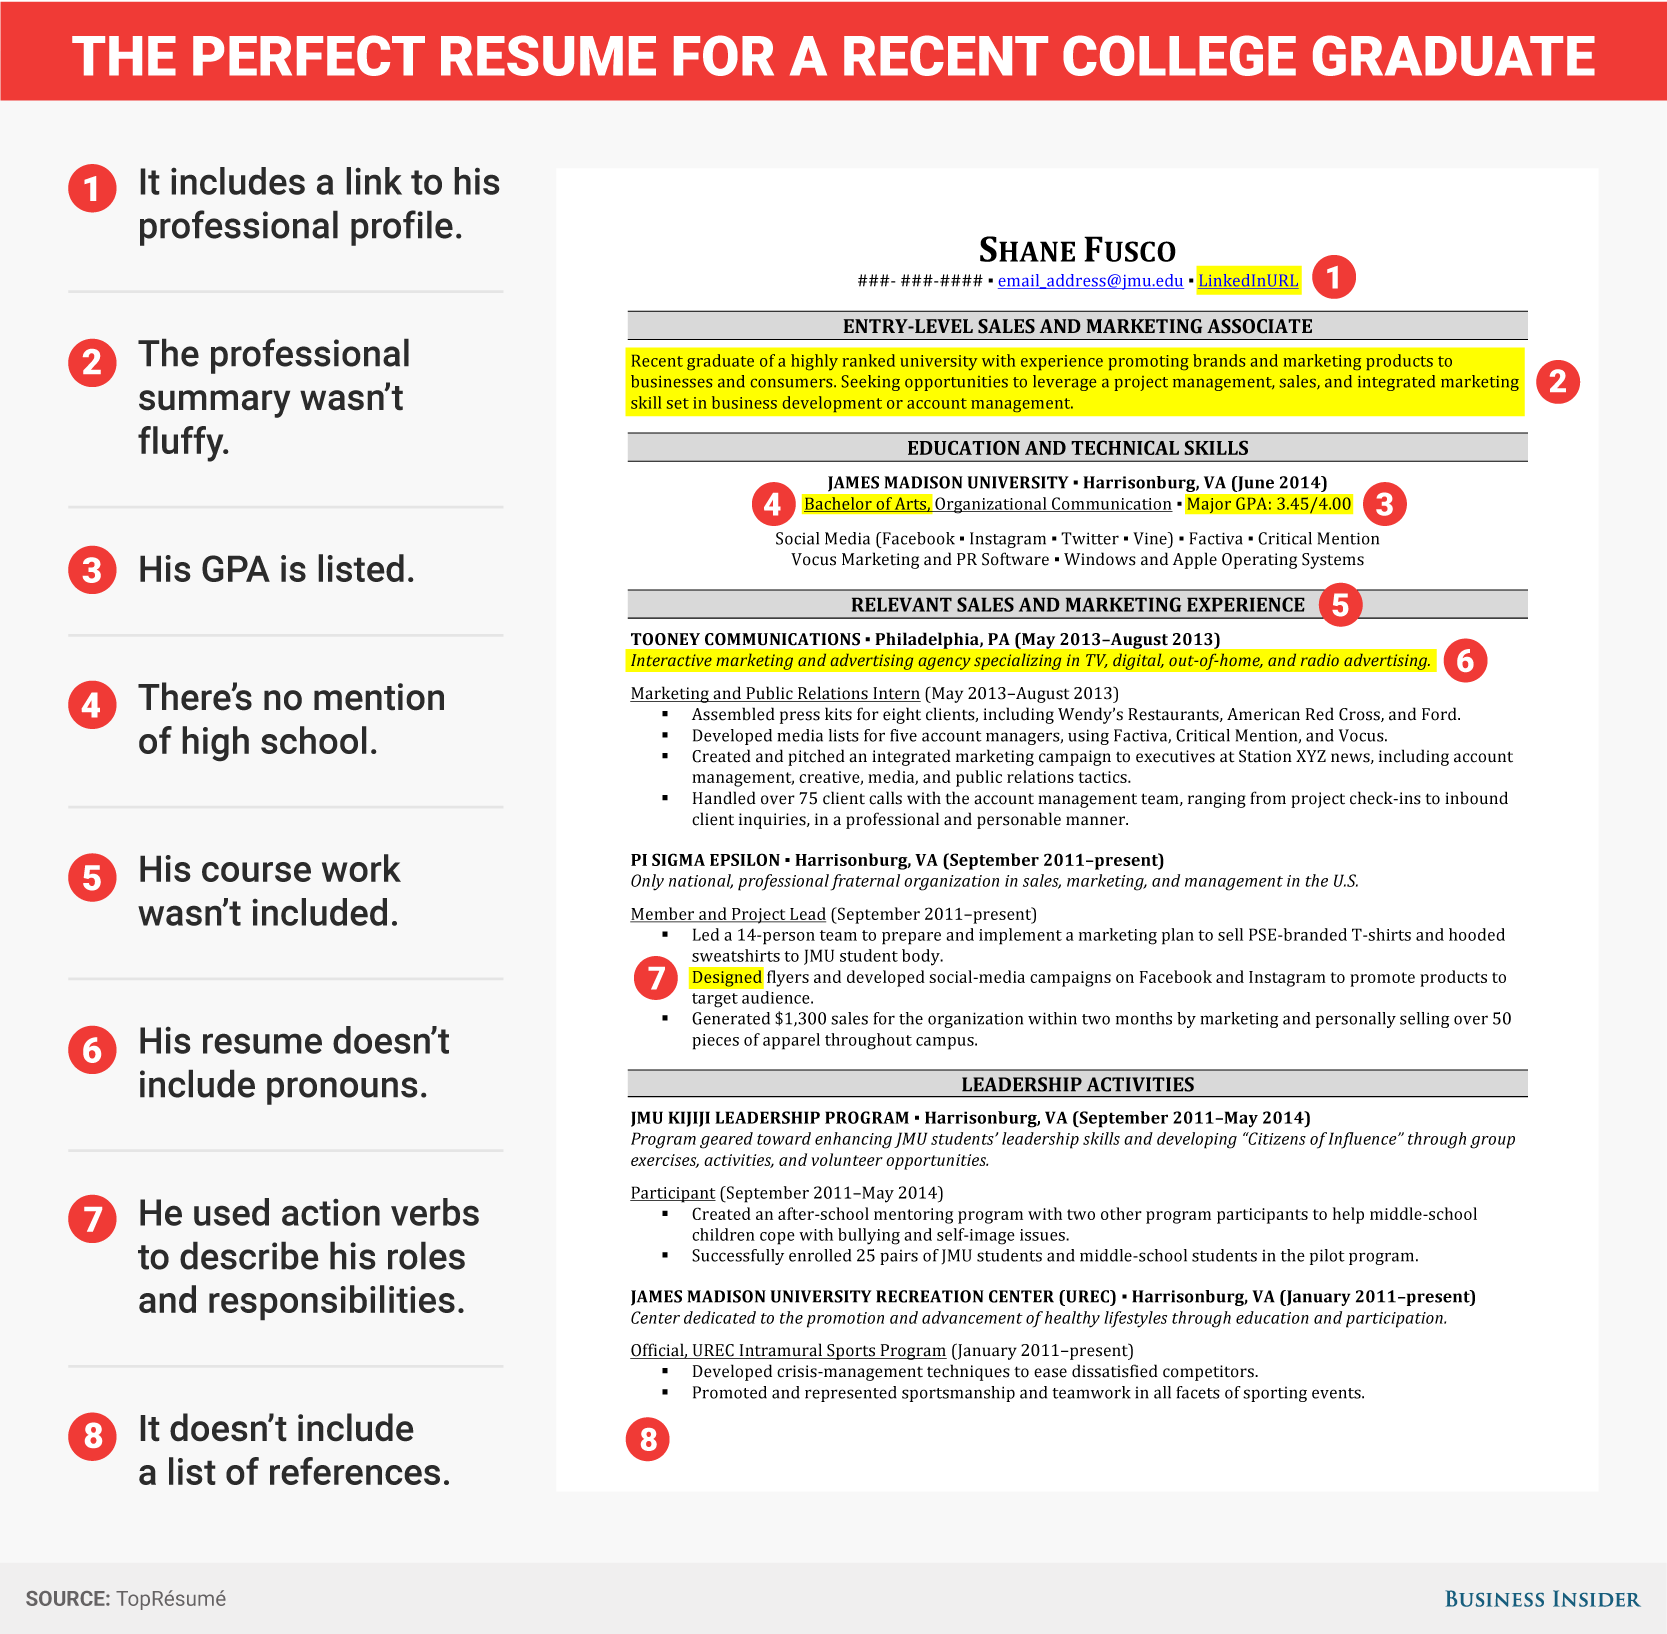 Recent Graduate Resume Objective Excellent Resume For Recent College Grad Business Insider